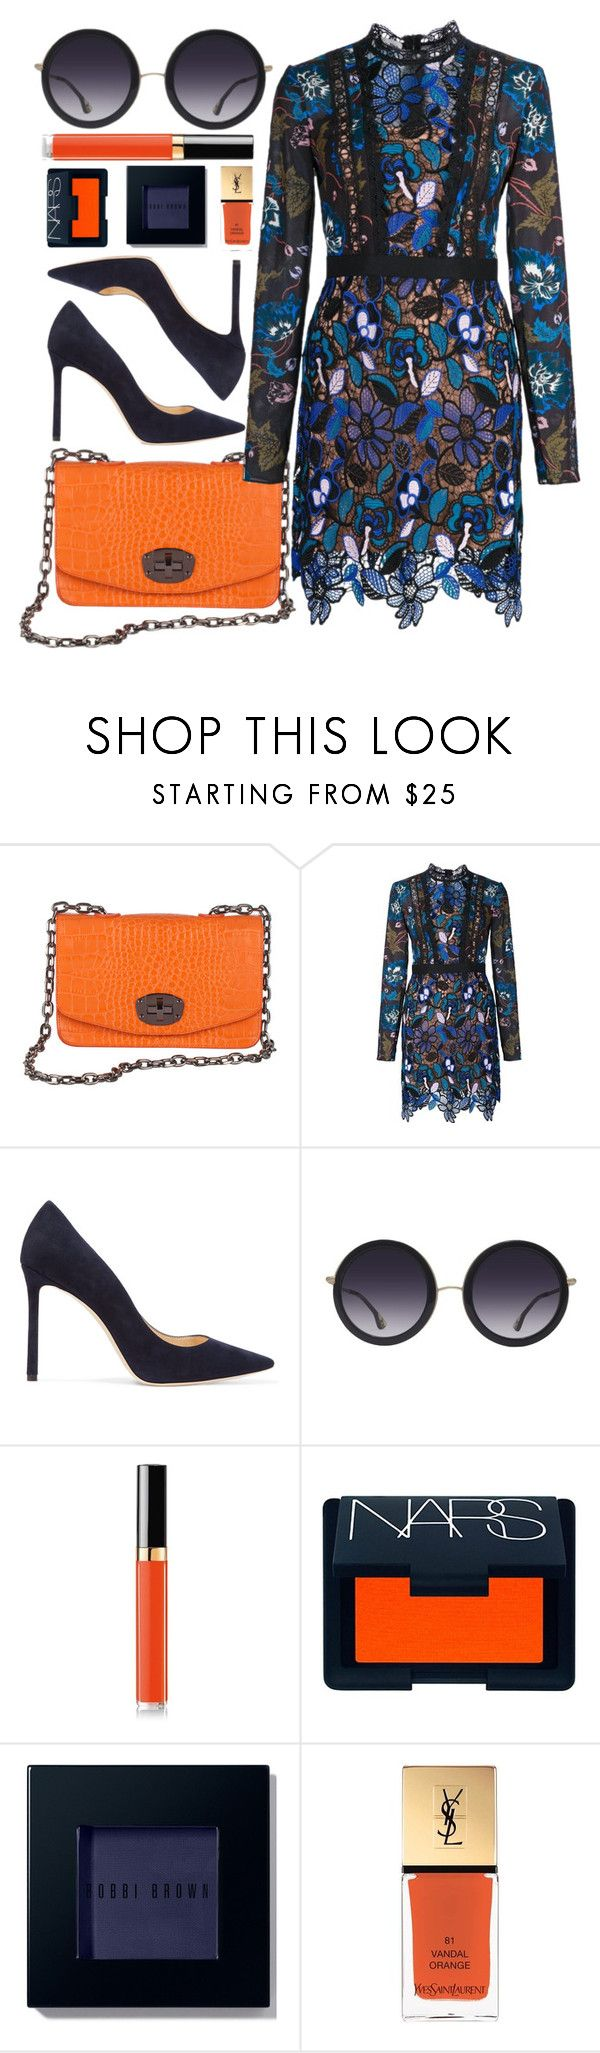 """""""Dinner Date"""" by mezzanotteofficial on Polyvore featuring self-portrait, Jimmy Choo, Alice + Olivia, Chanel, NARS Cosmetics, Bobbi Brown Cosmetics, Yves Saint Laurent, Blue and orange"""